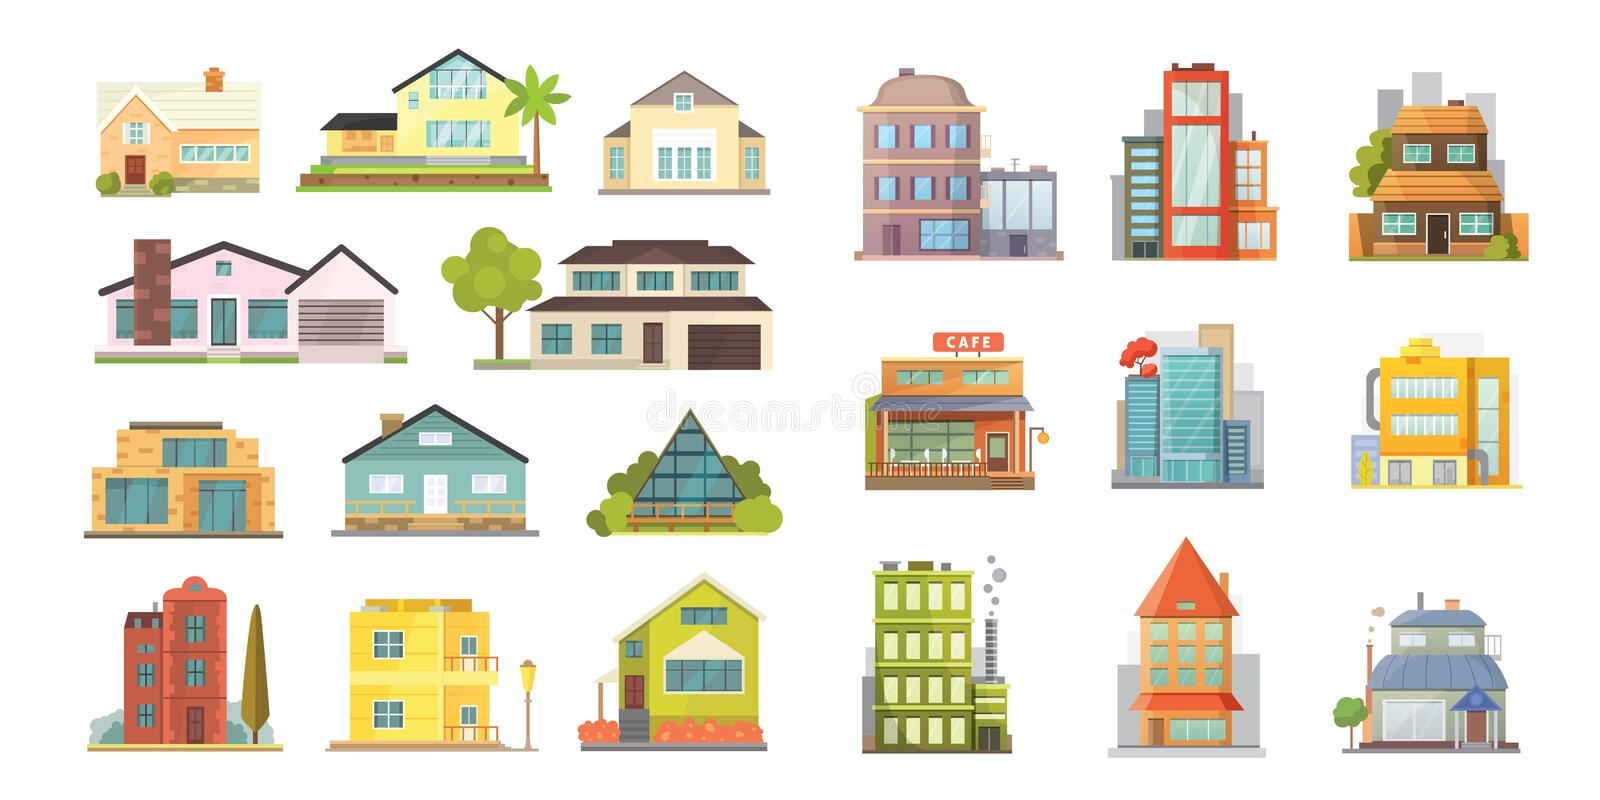 Set of different styles residential houses. City architecture retro and modern buildings. House front cartoon vector vector illustration